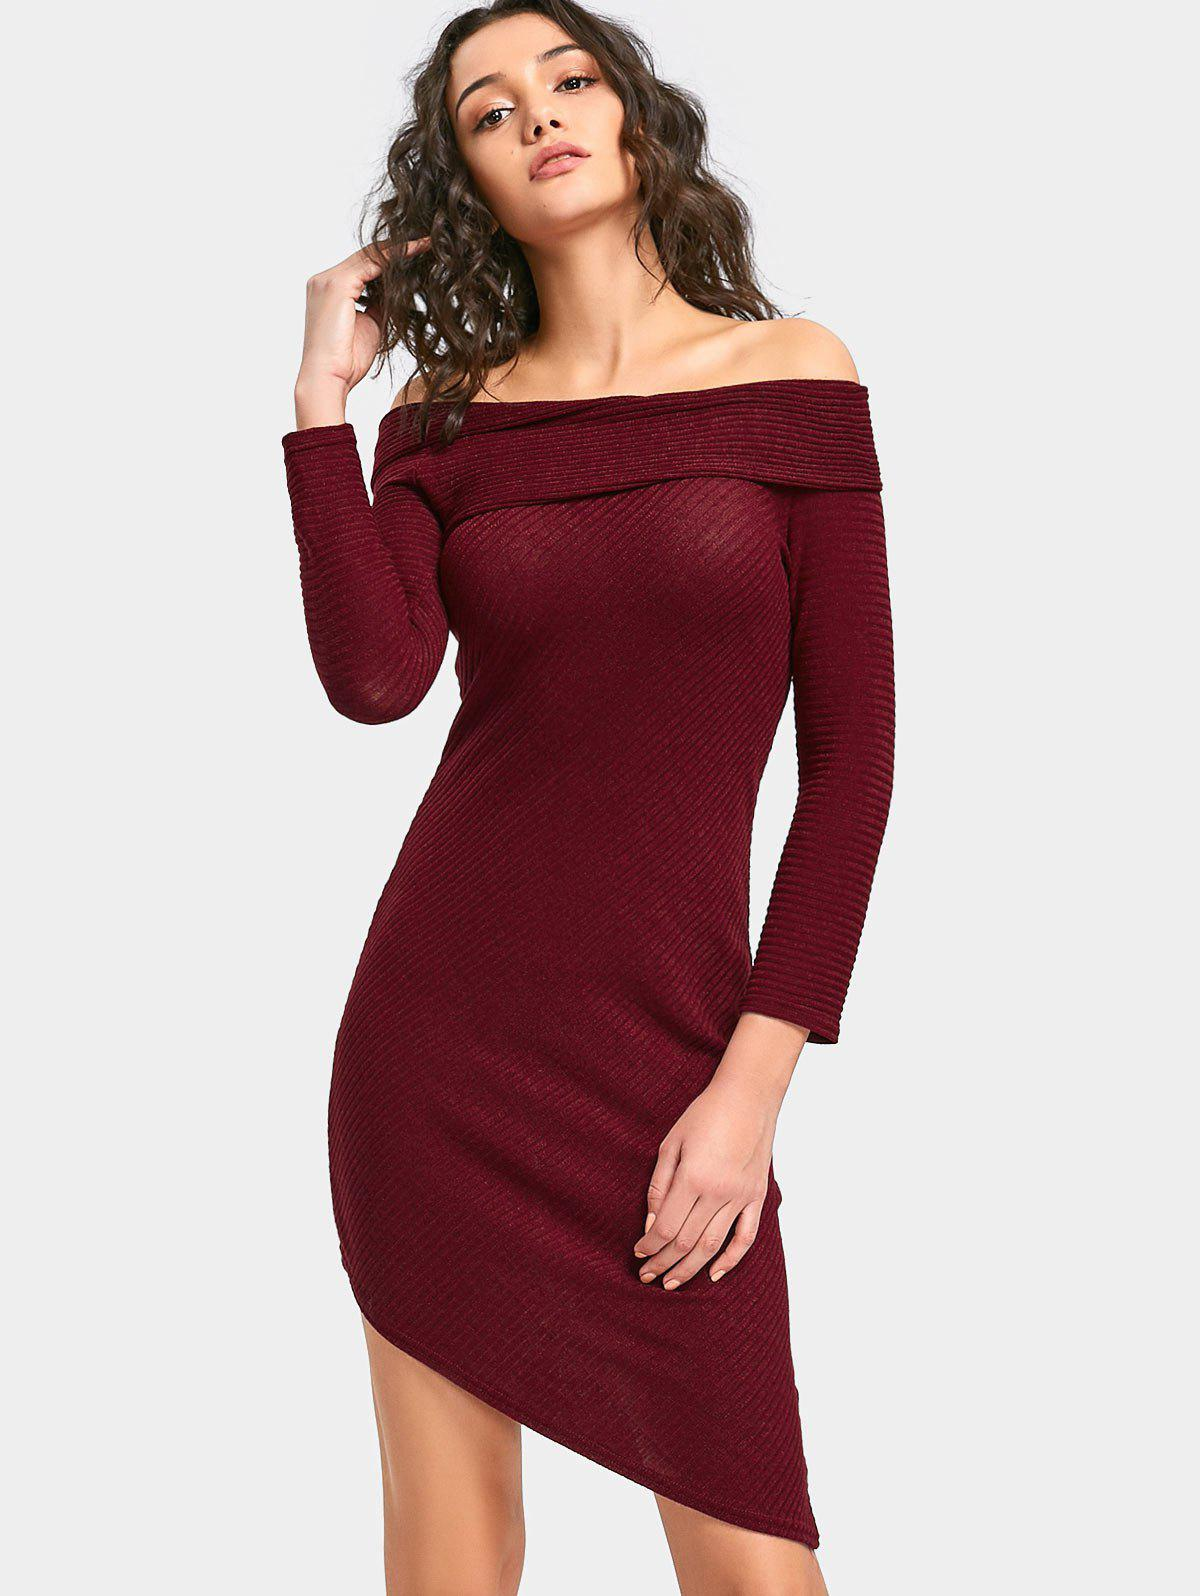 Off Shoulder Mini Knit Ribbed Dress 232805402